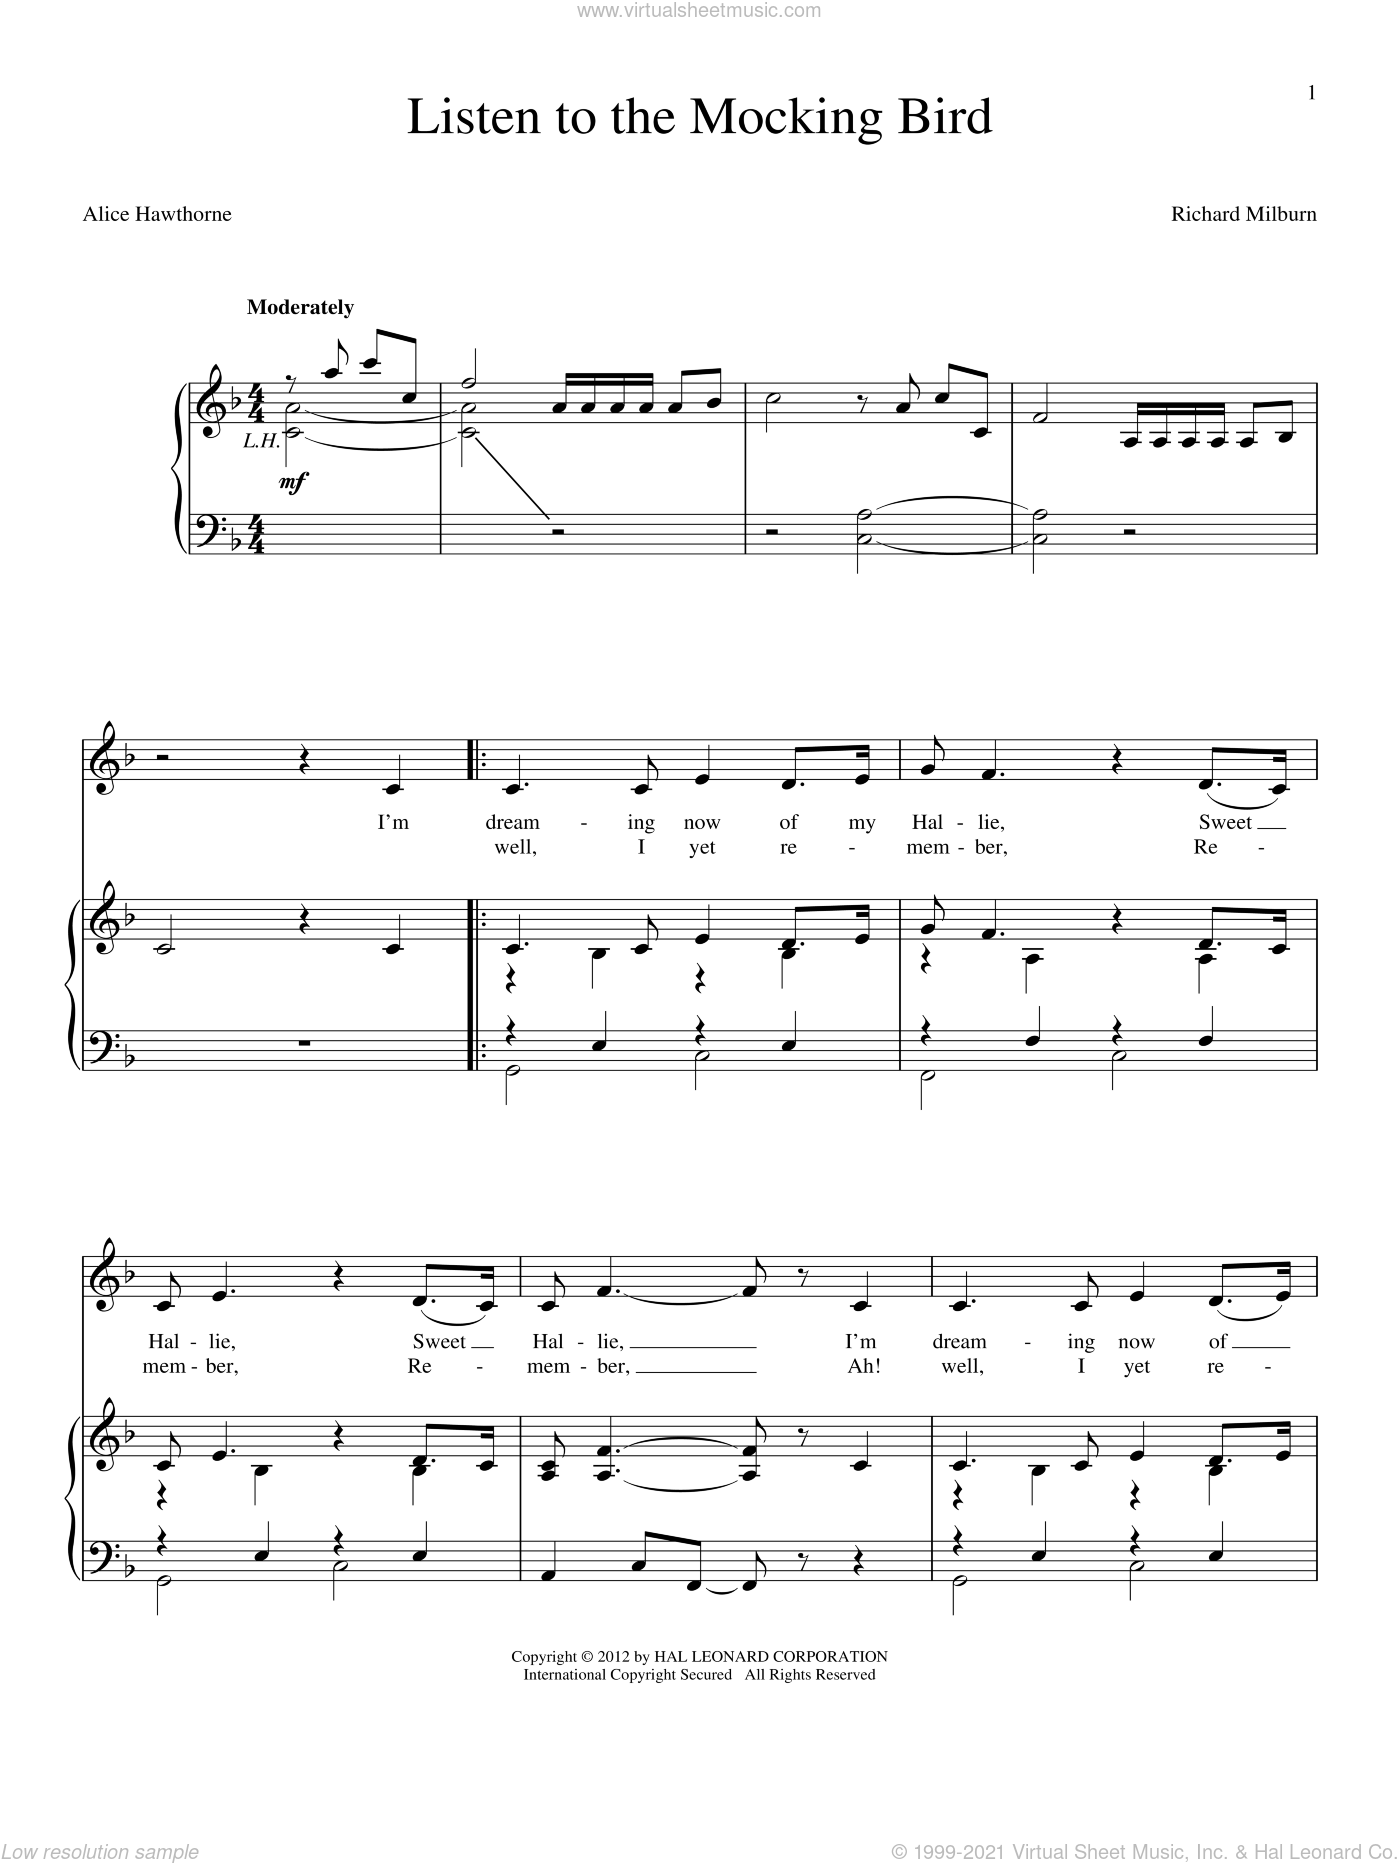 Listen To The Mocking Bird sheet music for voice and piano by Alice Hawthorne and Richard Milburn, intermediate skill level